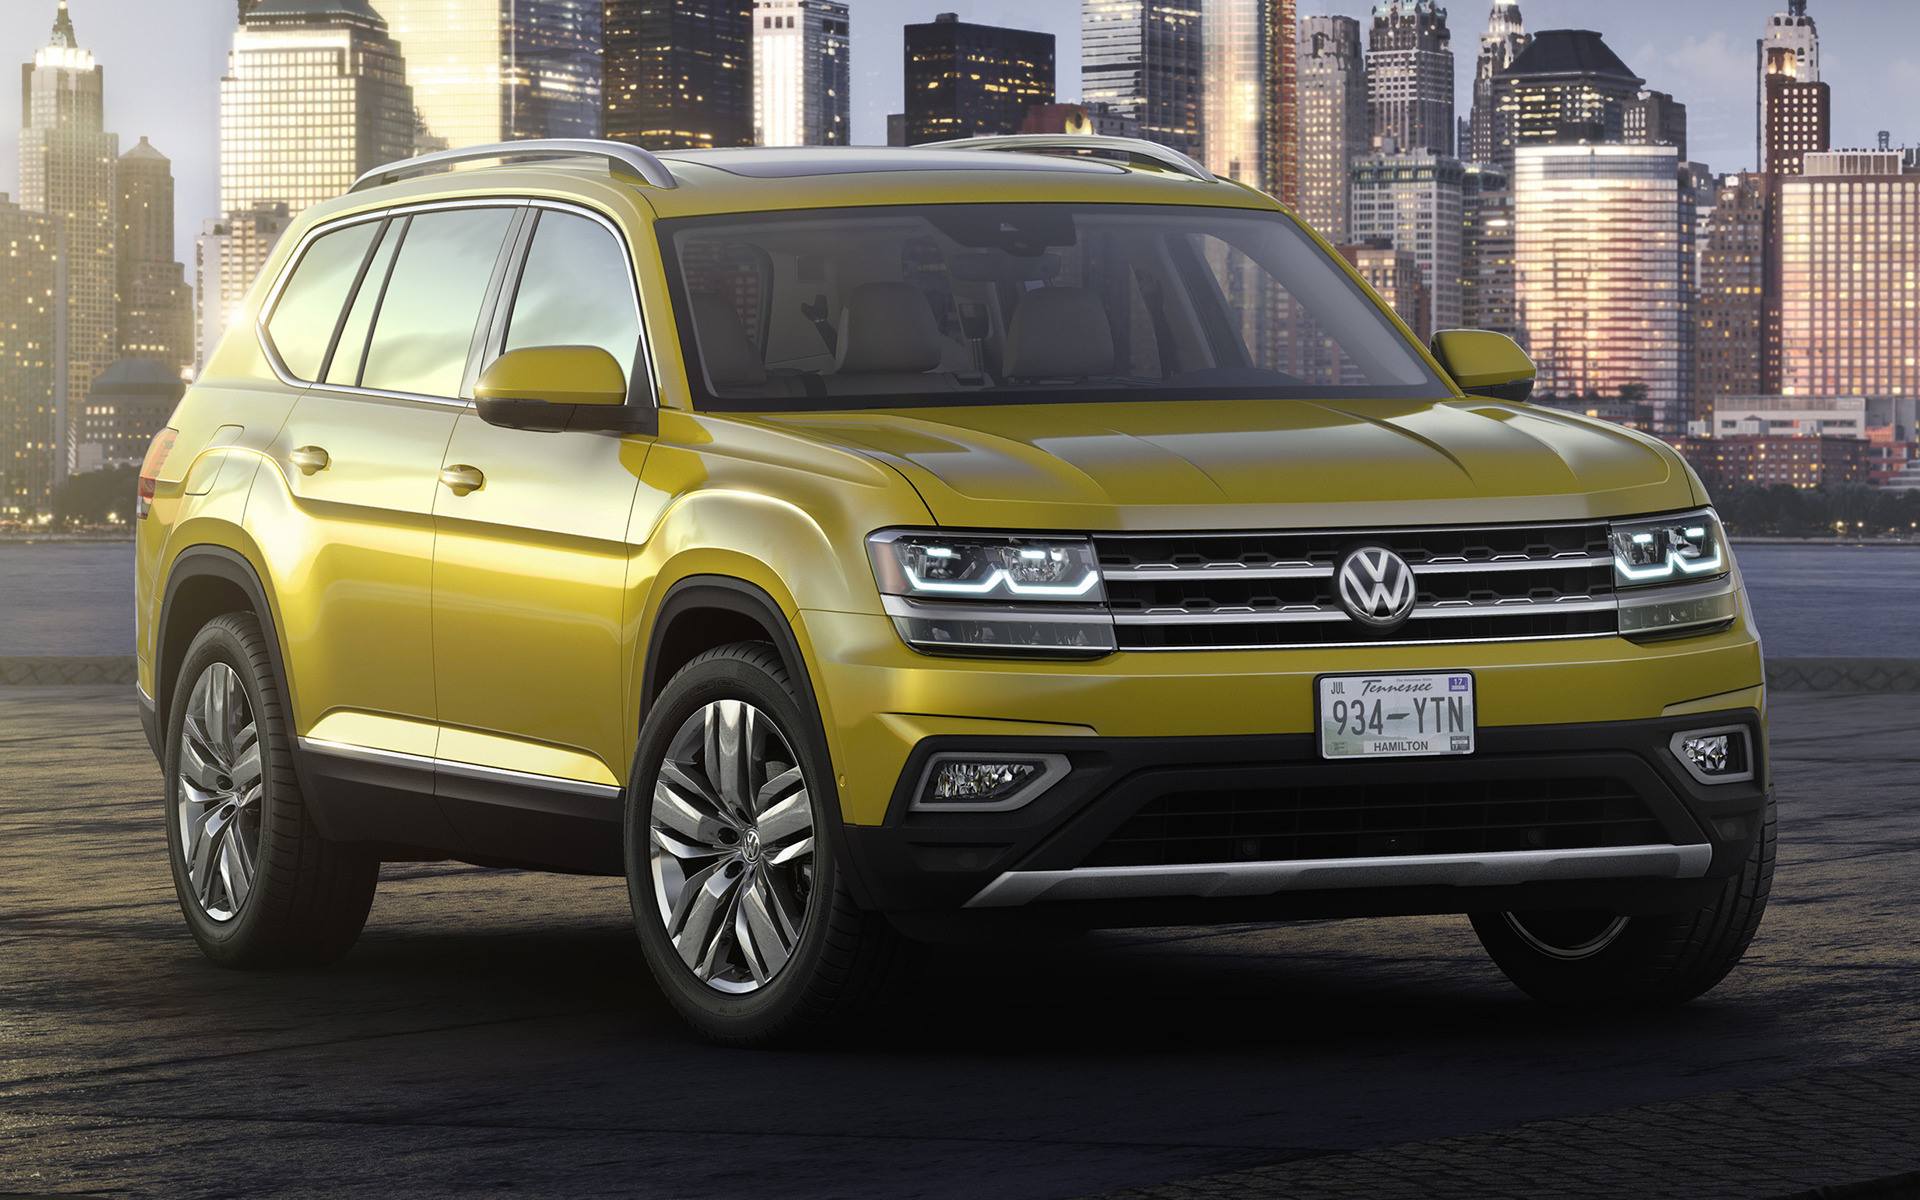 Volkswagen Atlas (2017) Wallpapers and HD Images - Car Pixel